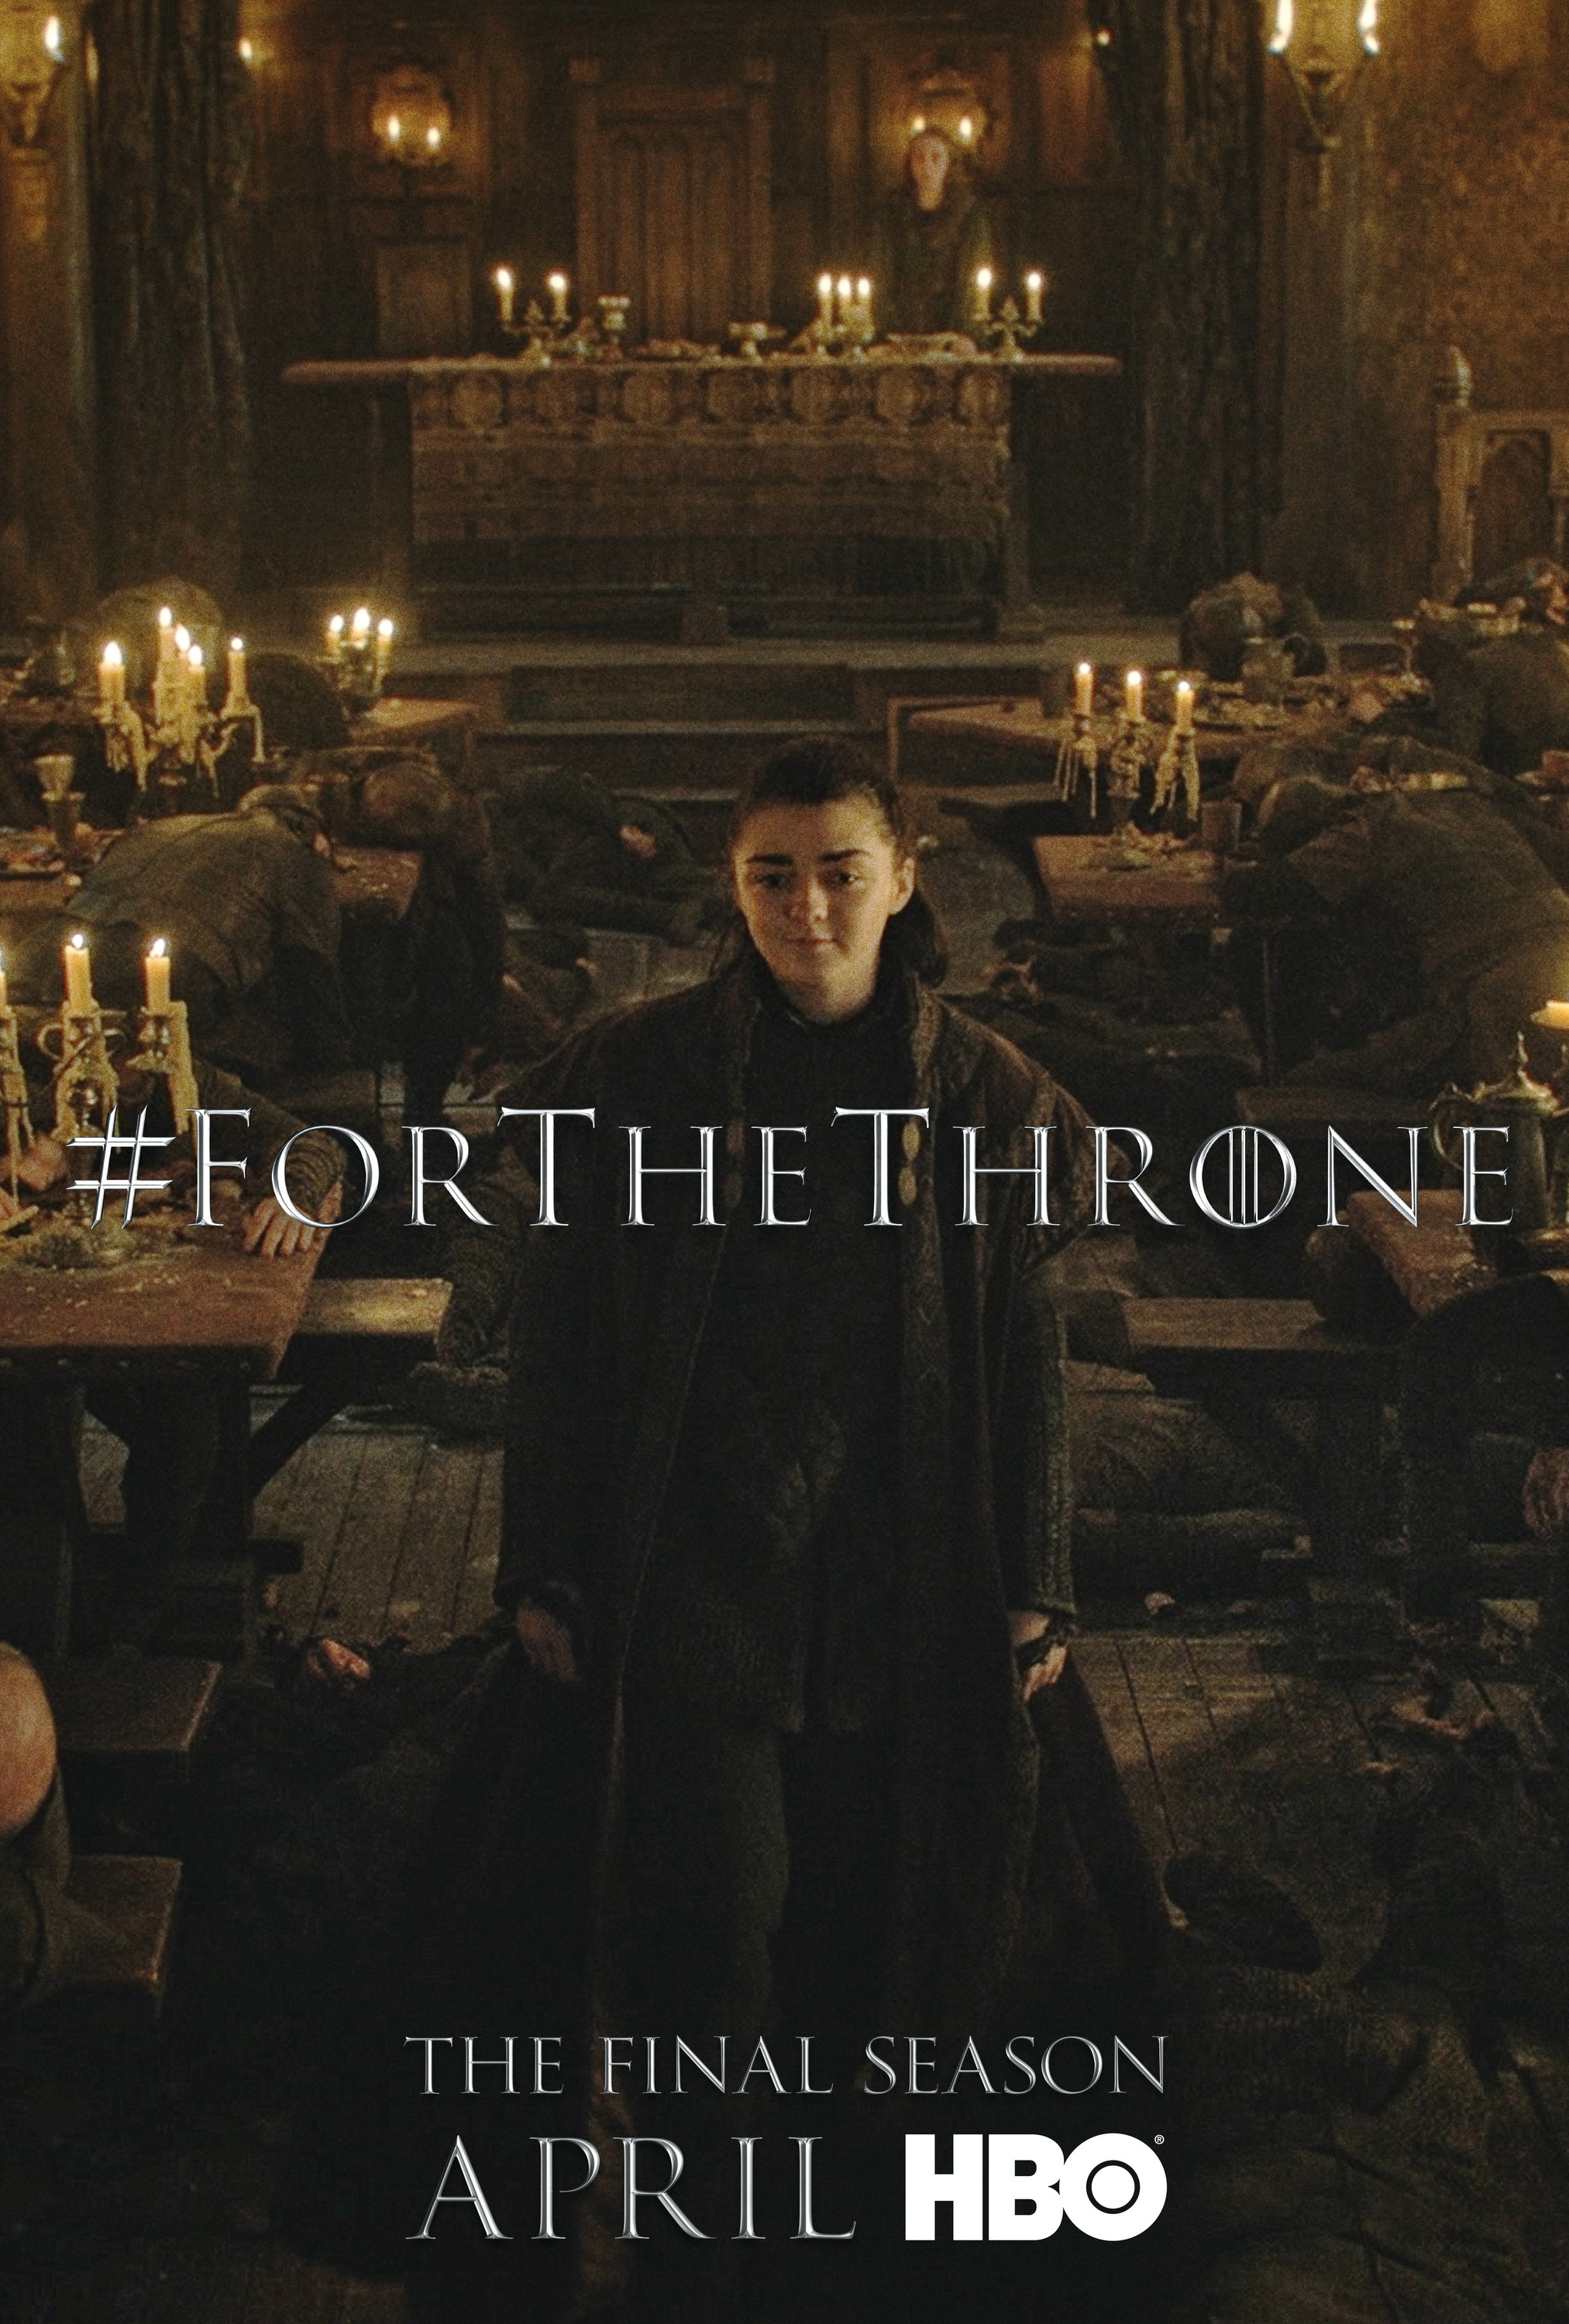 Game of Thrones - 'For the Throne' Poster - Arya Stark